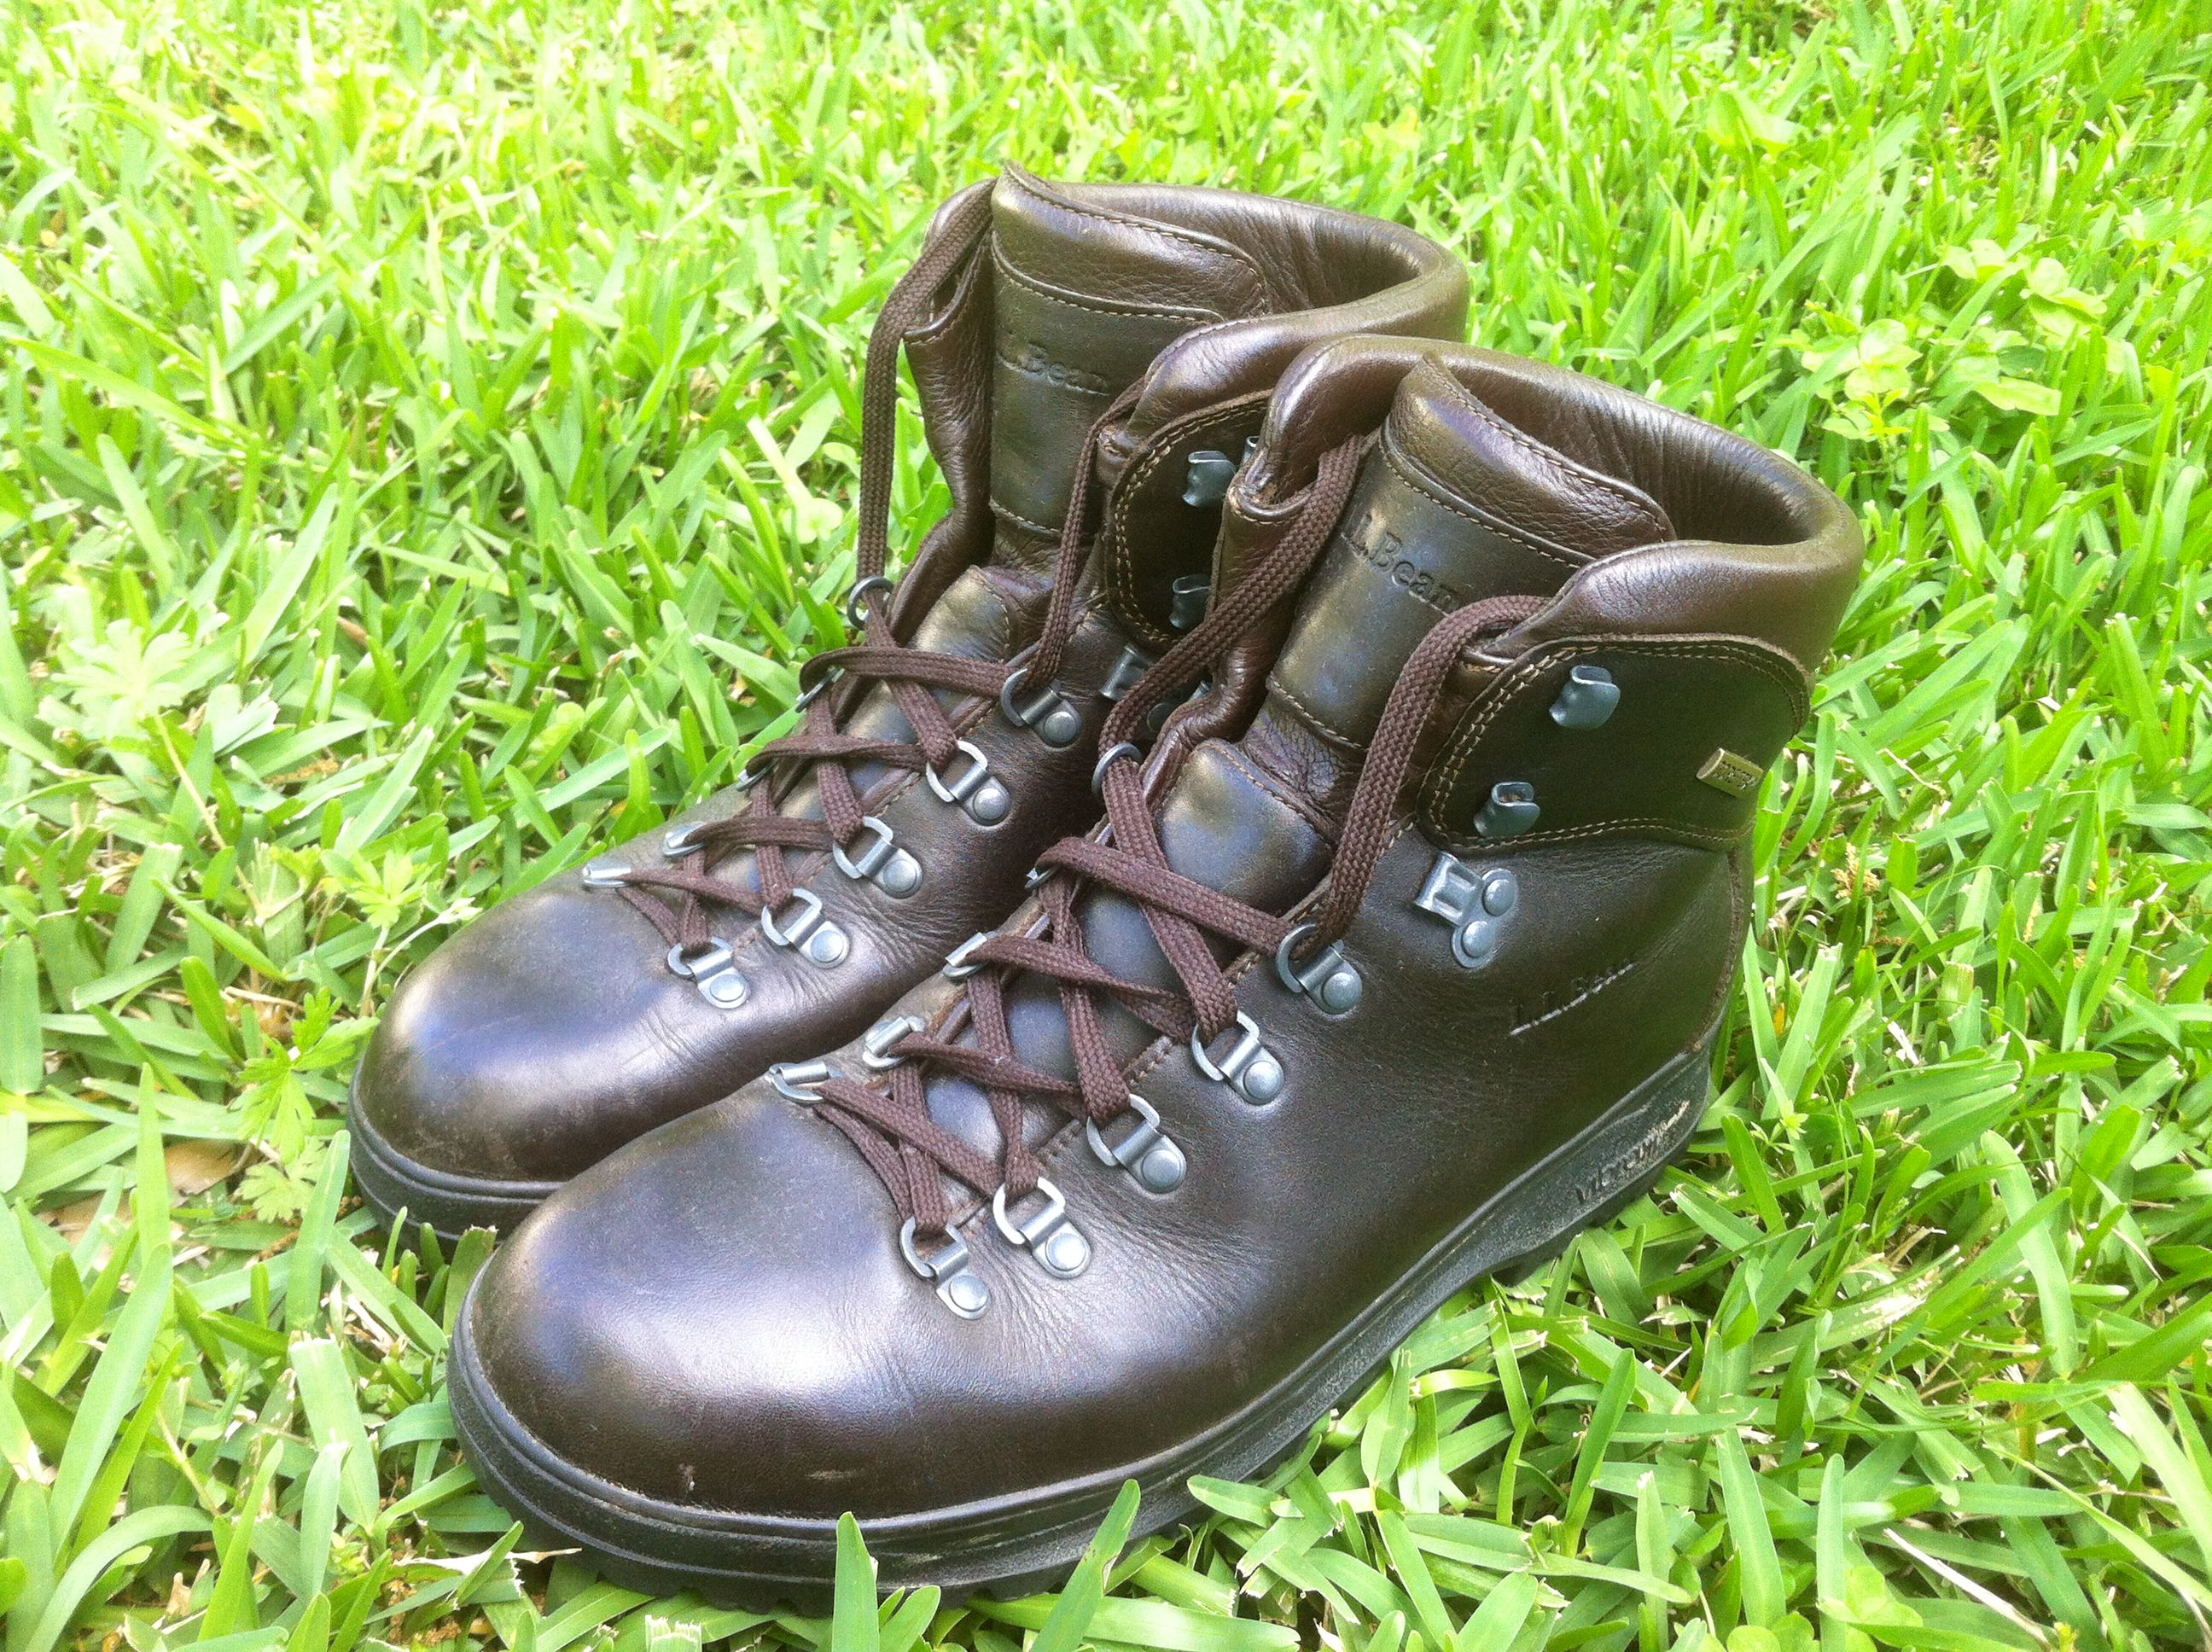 f1af948f019 Gear Review: L.L. Bean's Men's Gore-Tex Cresta Hiking Boots | Hiking ...